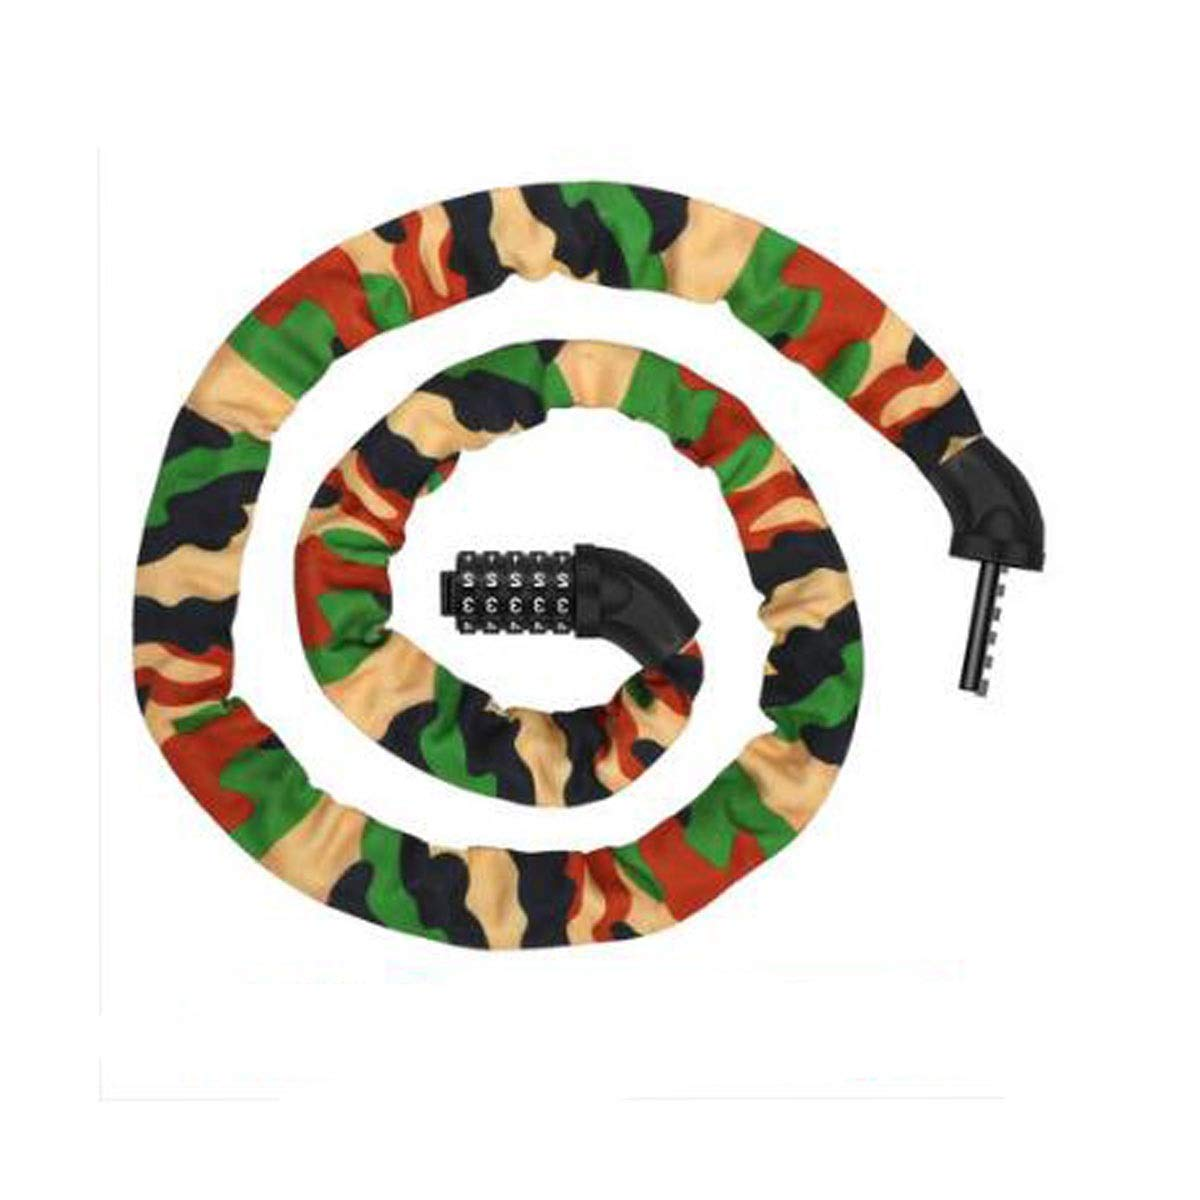 8haowenju Bicycle Chain Lock, Bicycle Safety Lock with 5-Digit Combination Lightweight Bicycle Lock, Size: 60 Inches (Length) 0.5 Inches (Diameter), Color: Multi-Colored